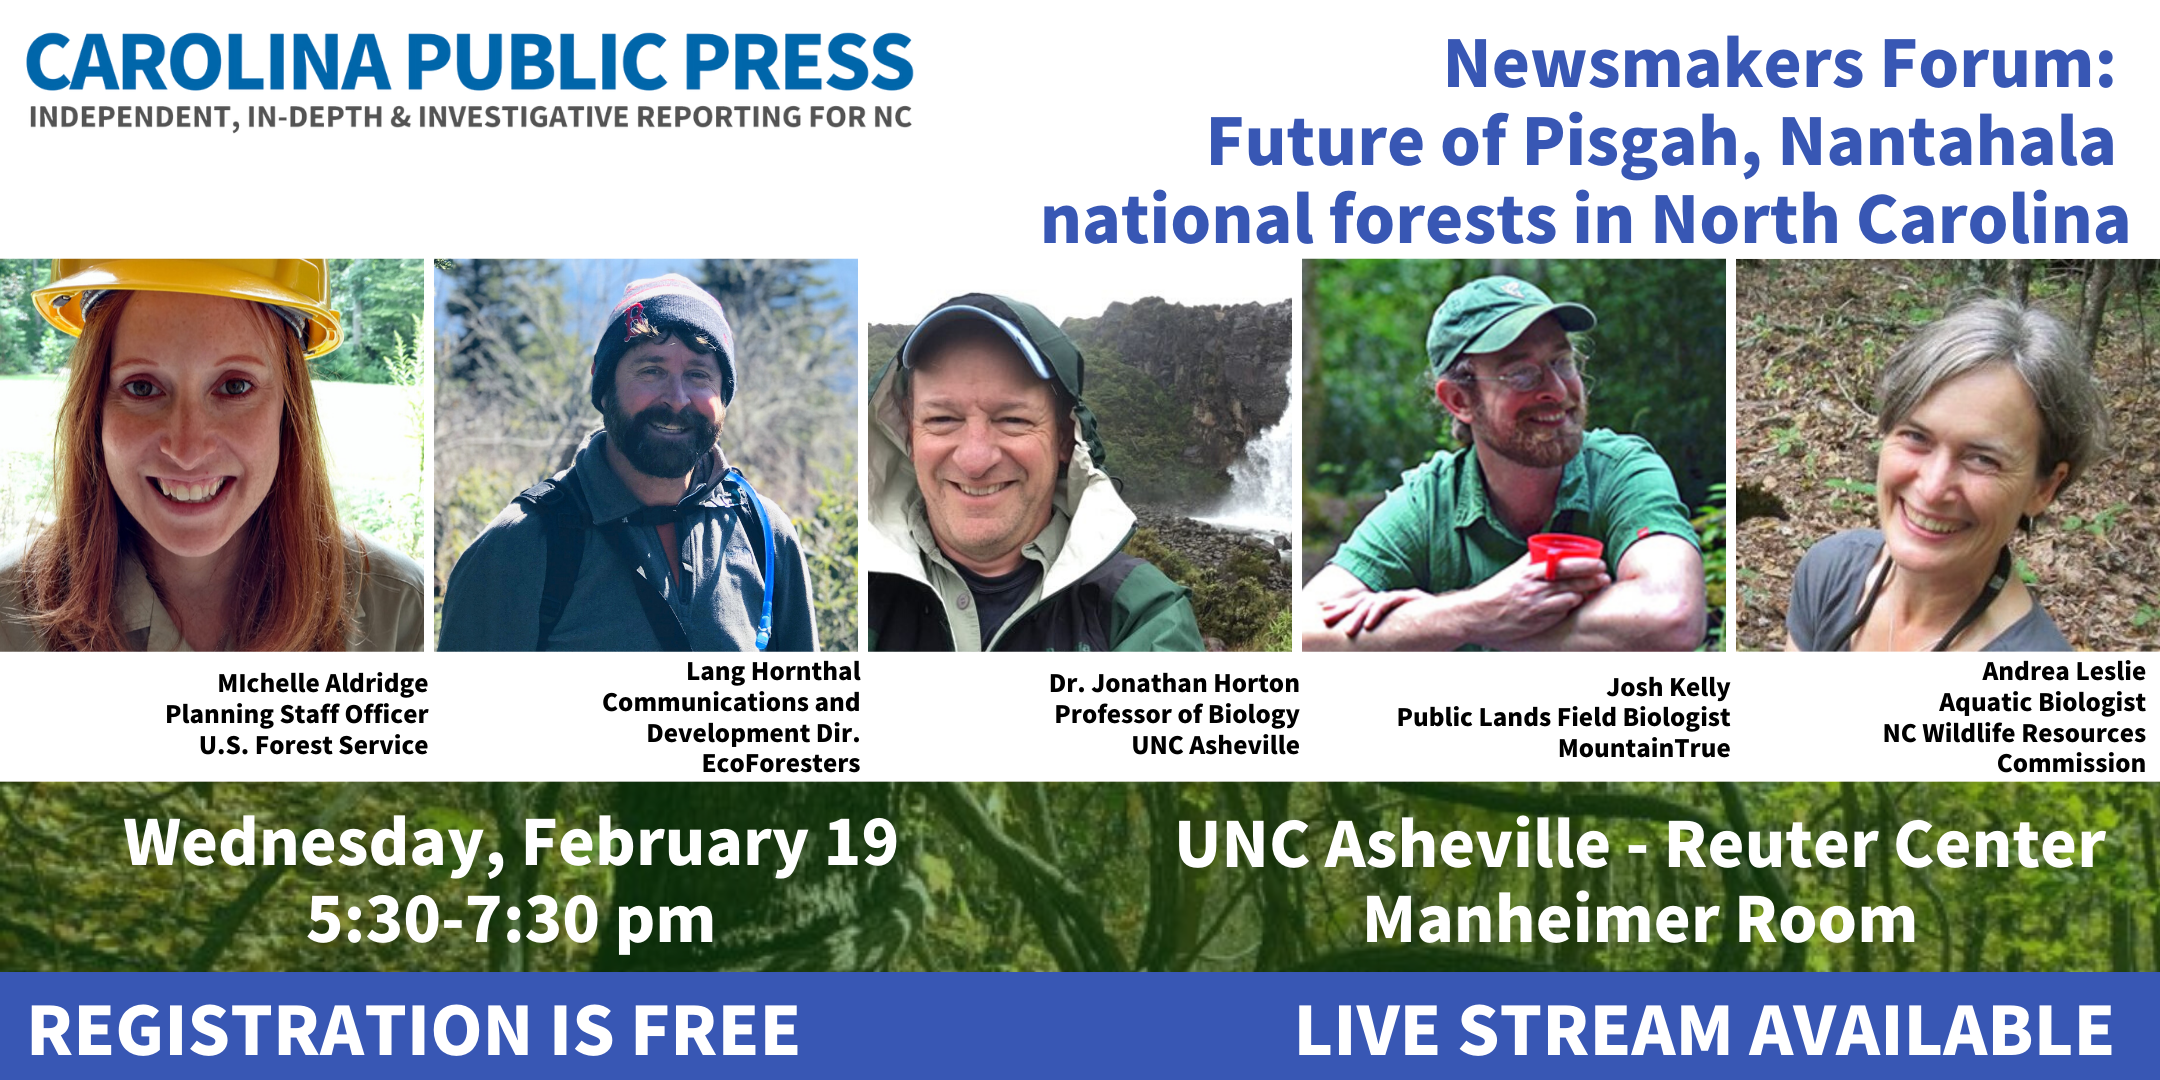 forum on the future of the Pisgah and Nantahala national forests